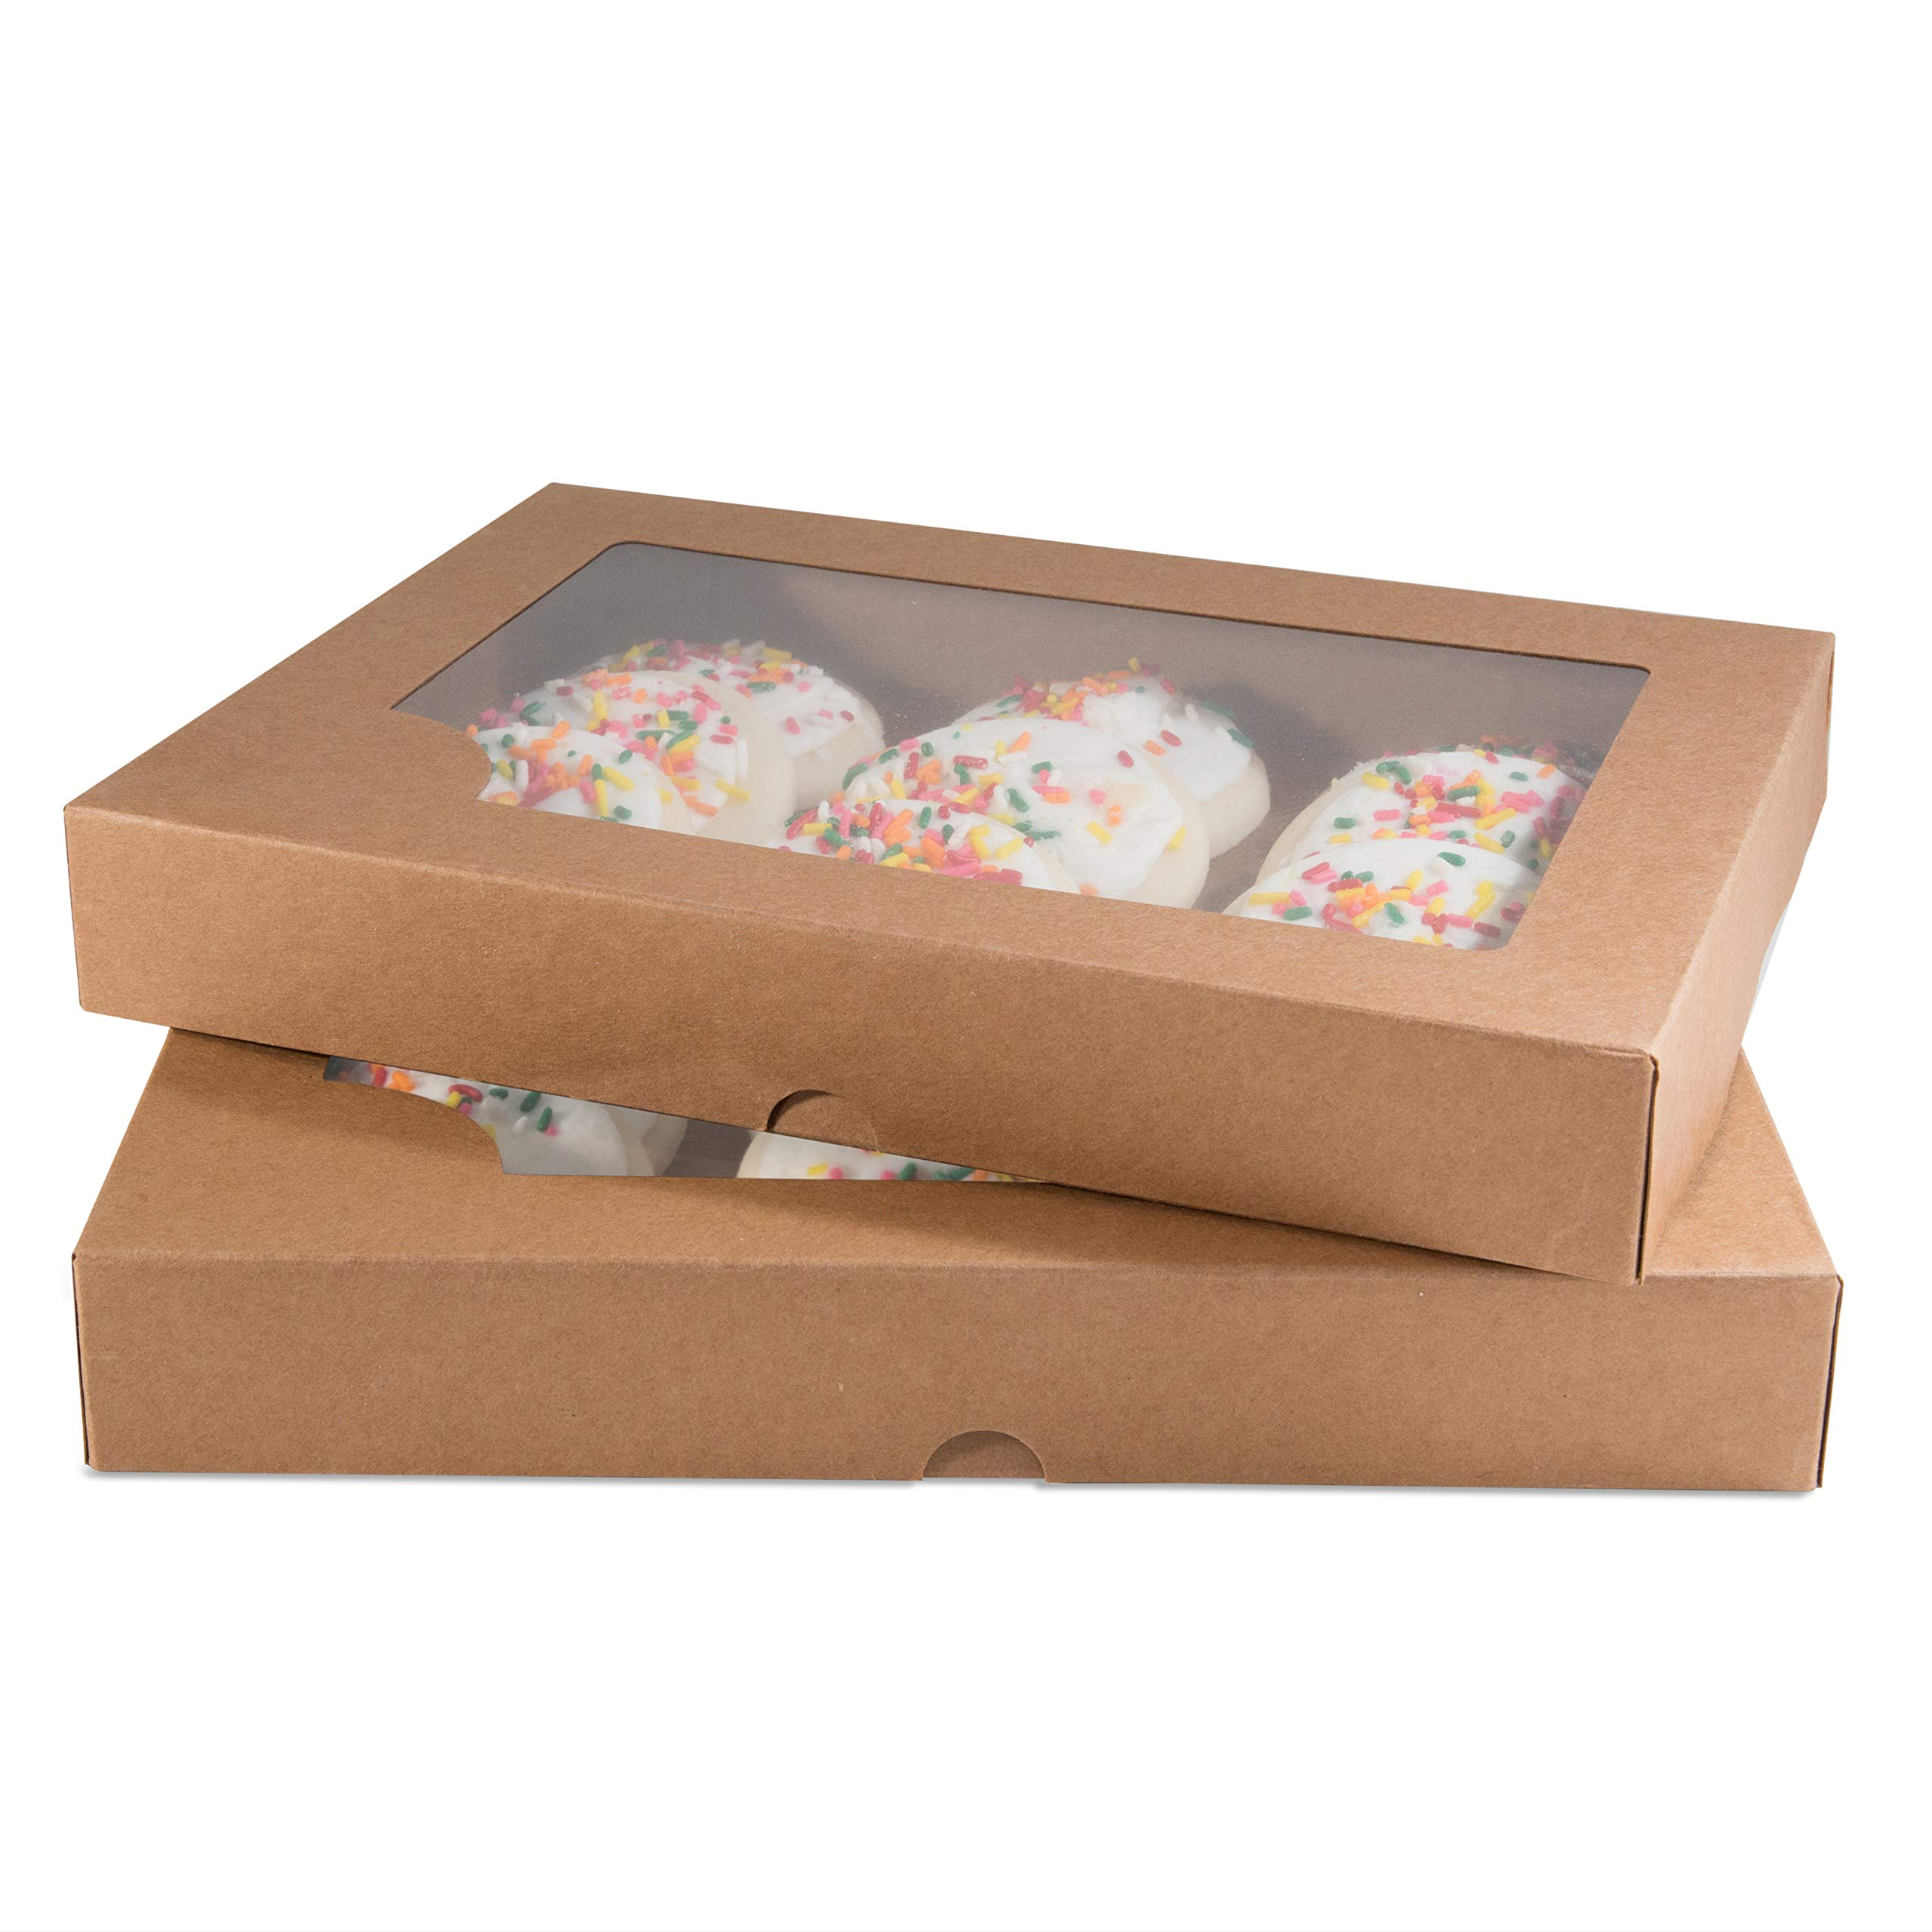 Cookie Cake Shoppe Kraft Gift Boxes with Clear Window (12-Pack) Paper DIY Craft Storage | For Cookies, Goodies, Sweet Treats, TShirts, Gifts, Baked Goods | Hobbies, Crafter, Other Small Favors by Cookie Cake Shop